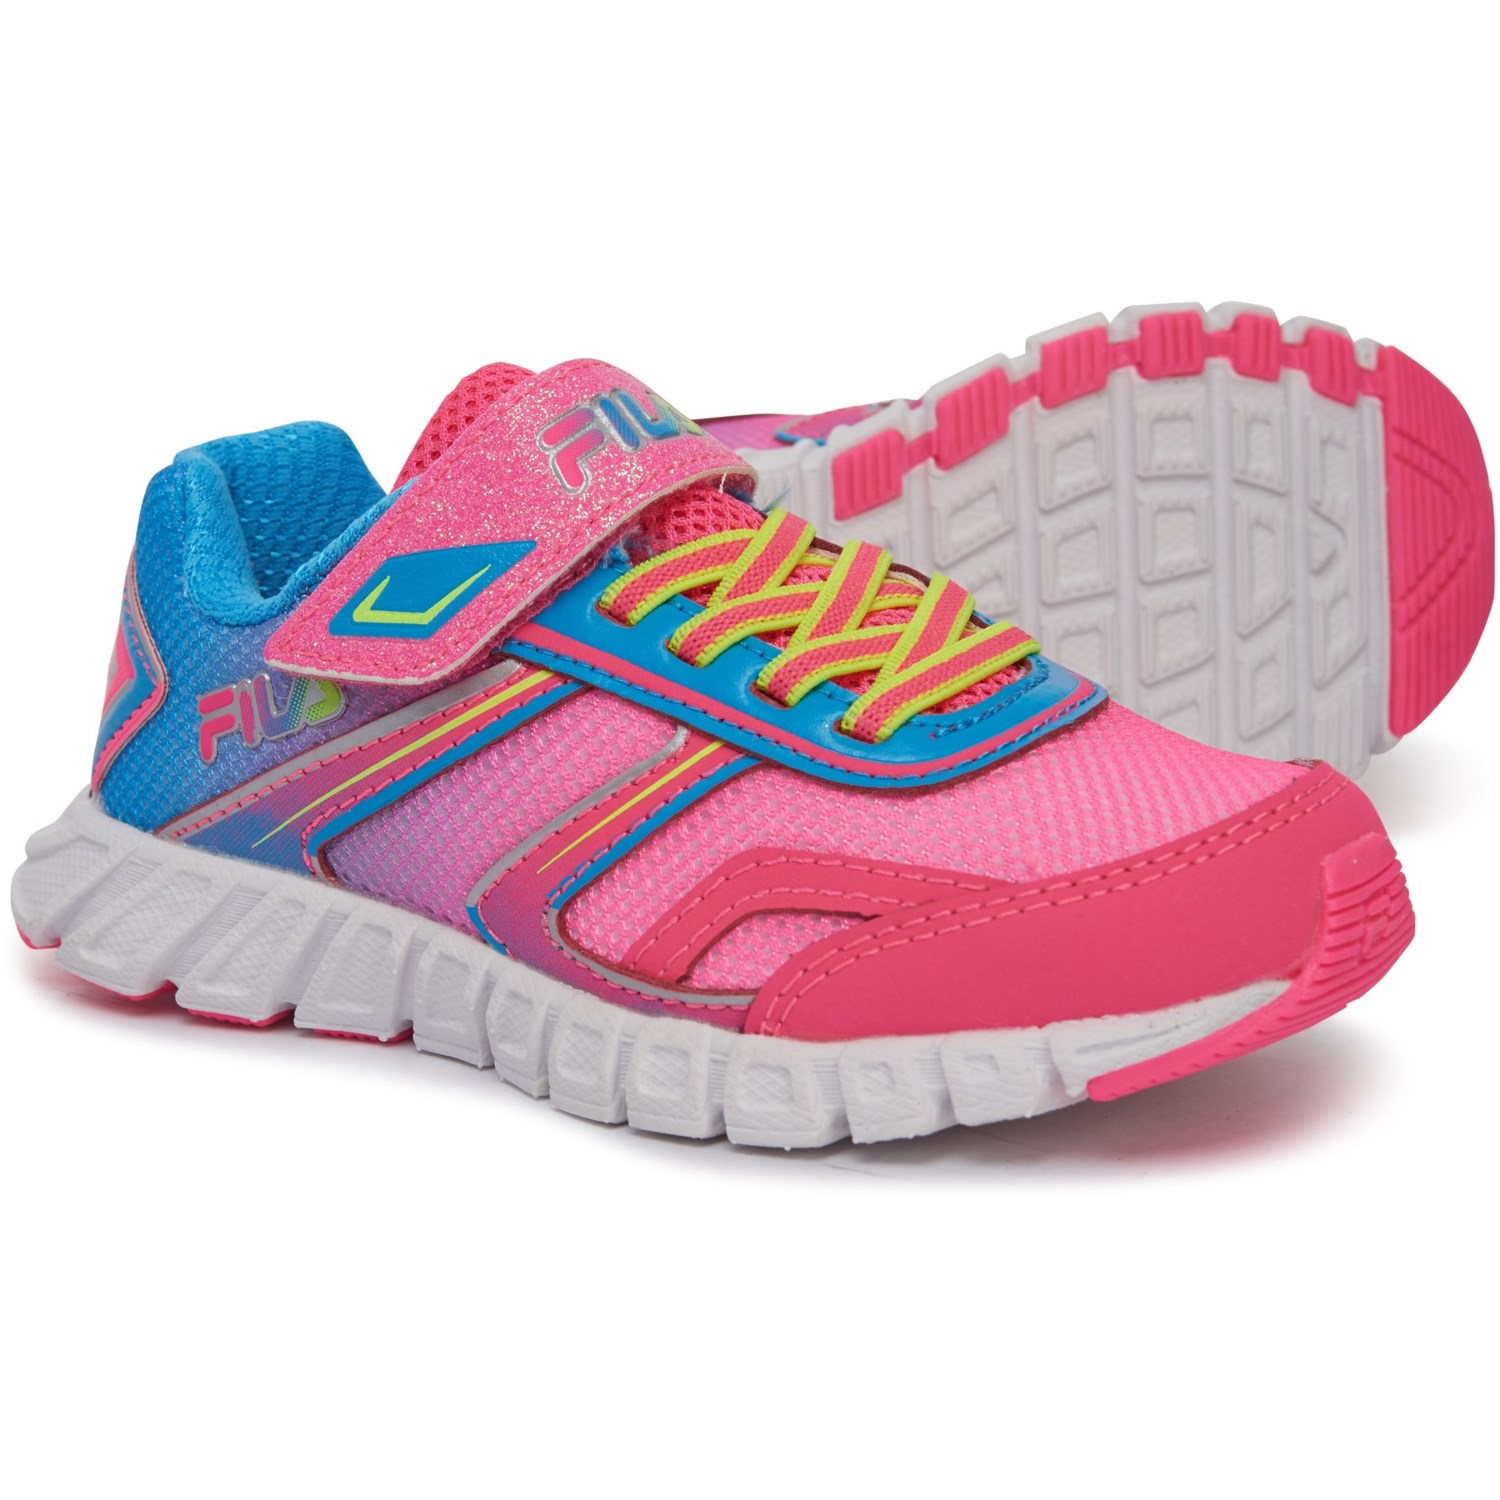 Fila Crater 19 Running Shoes (For Girls) Save 33%